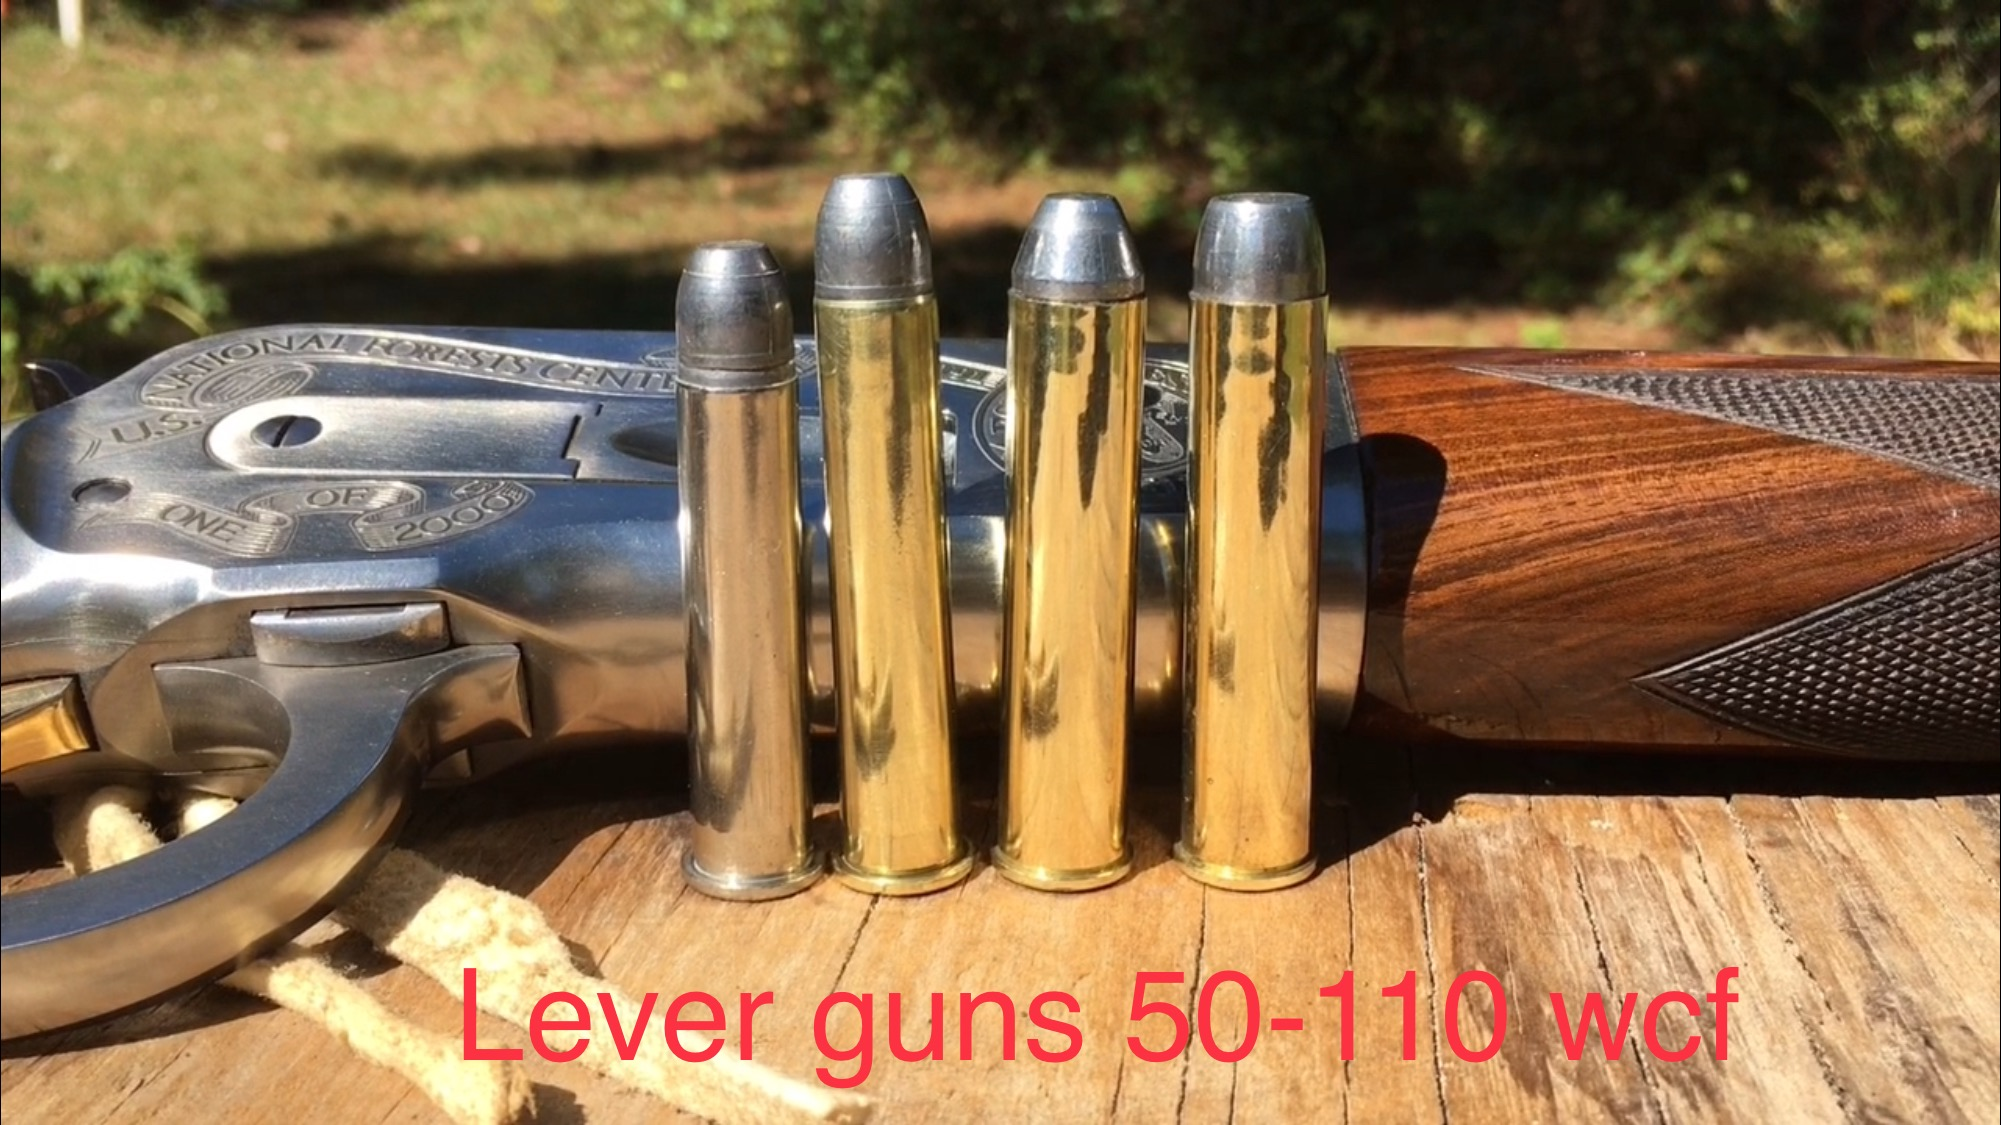 75 grain 32-20 WCF extreme defense out of the Winchester 1892 1